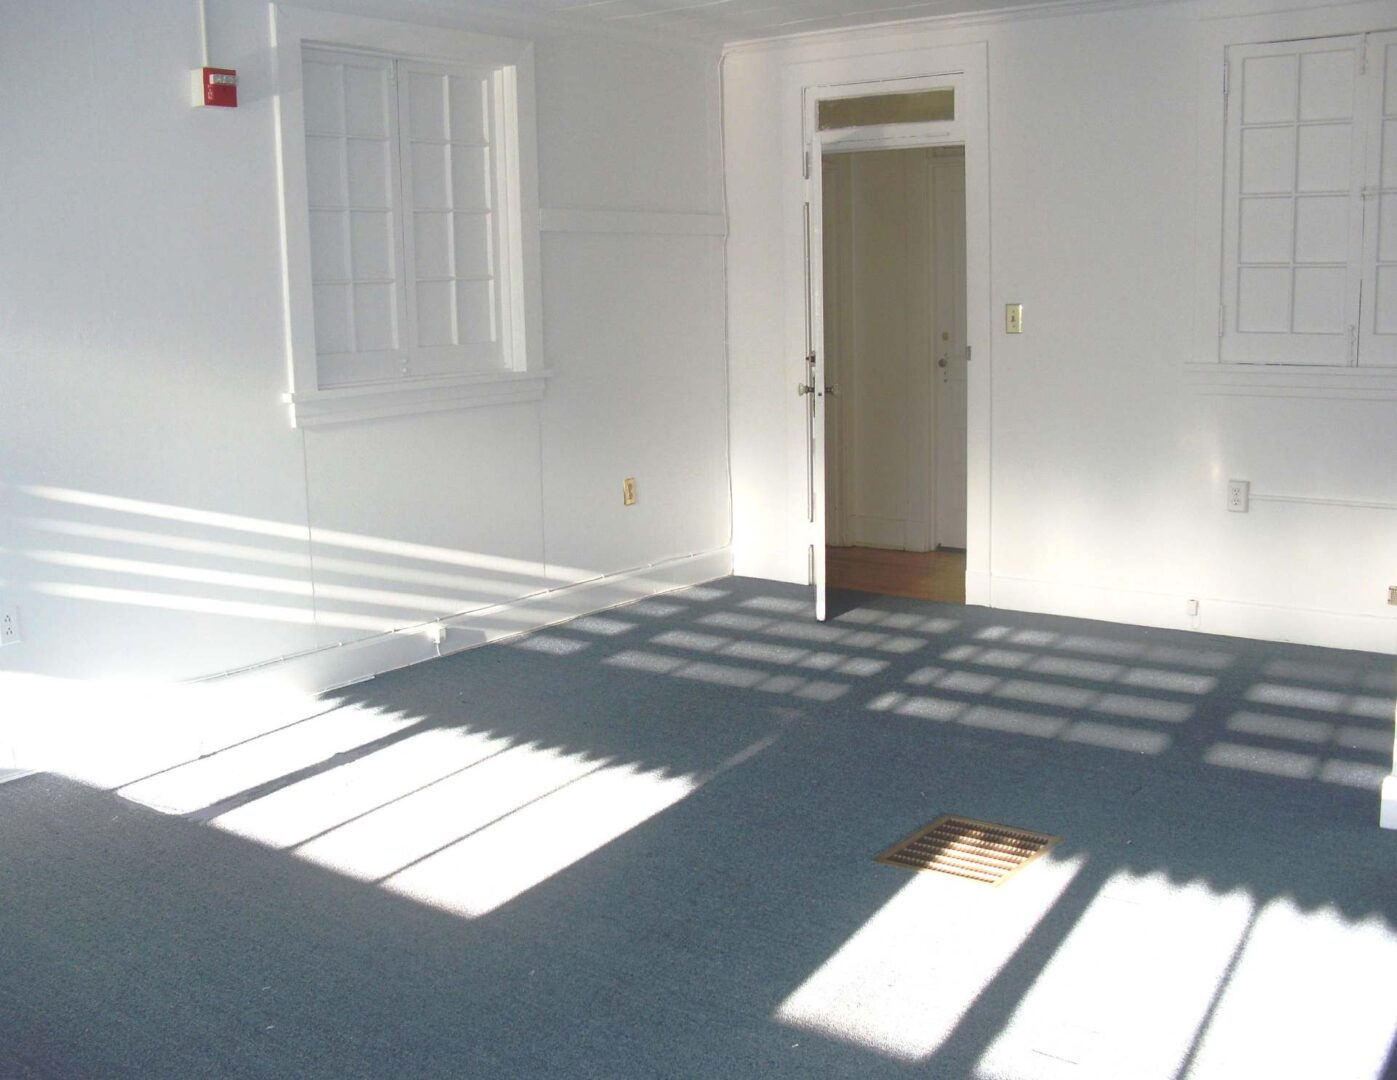 Large windows and deep blue carpet of a sunlit office at 222 Severn / W&P Nautical in the historic Trumpy Yacht building near Annapolis.